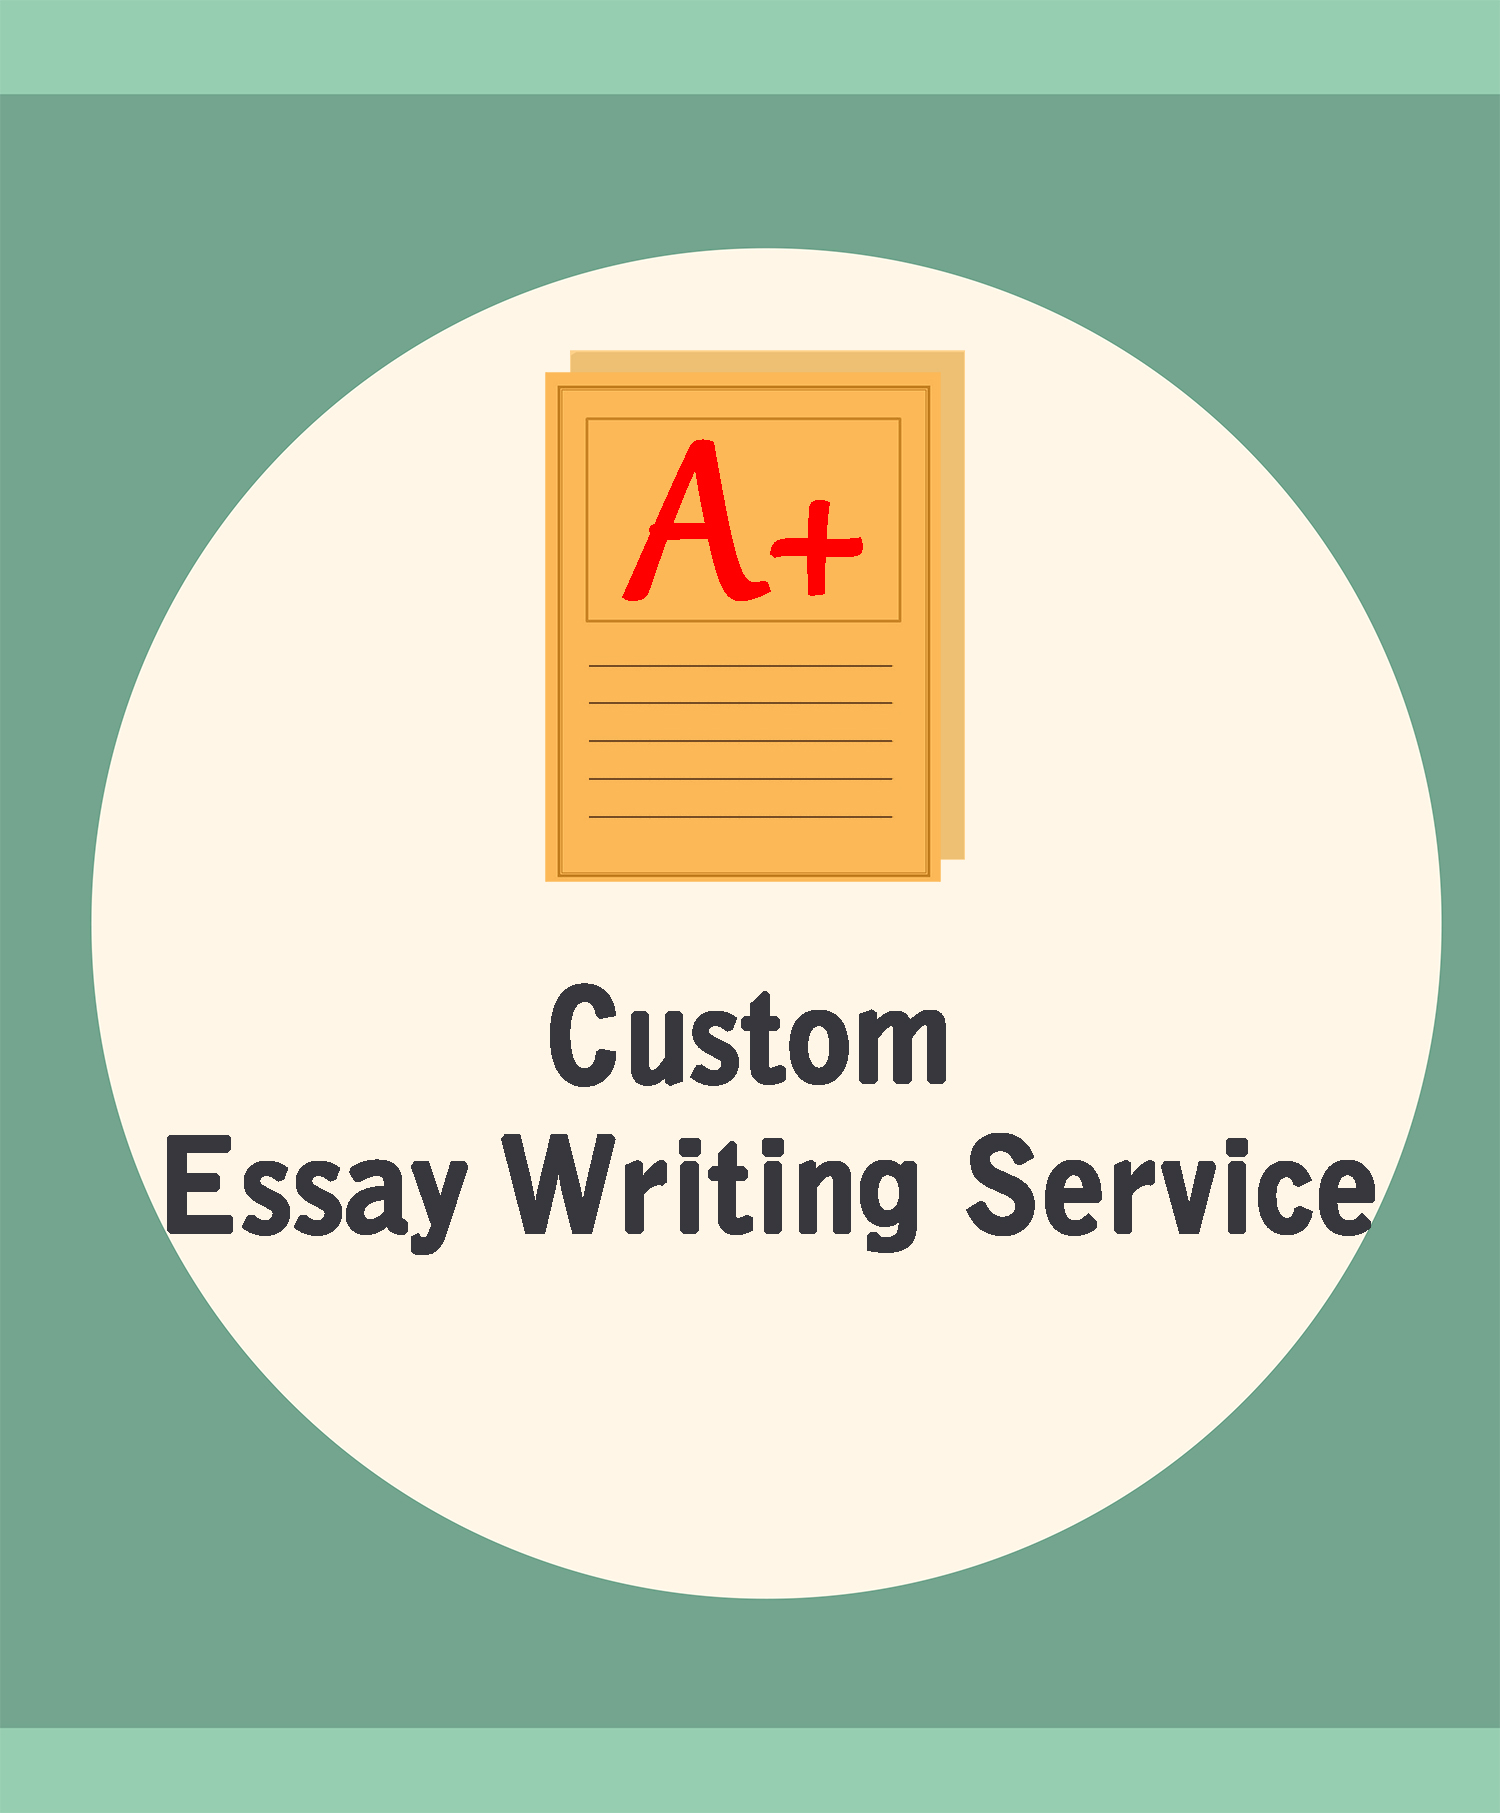 Custom thesis writing service expert